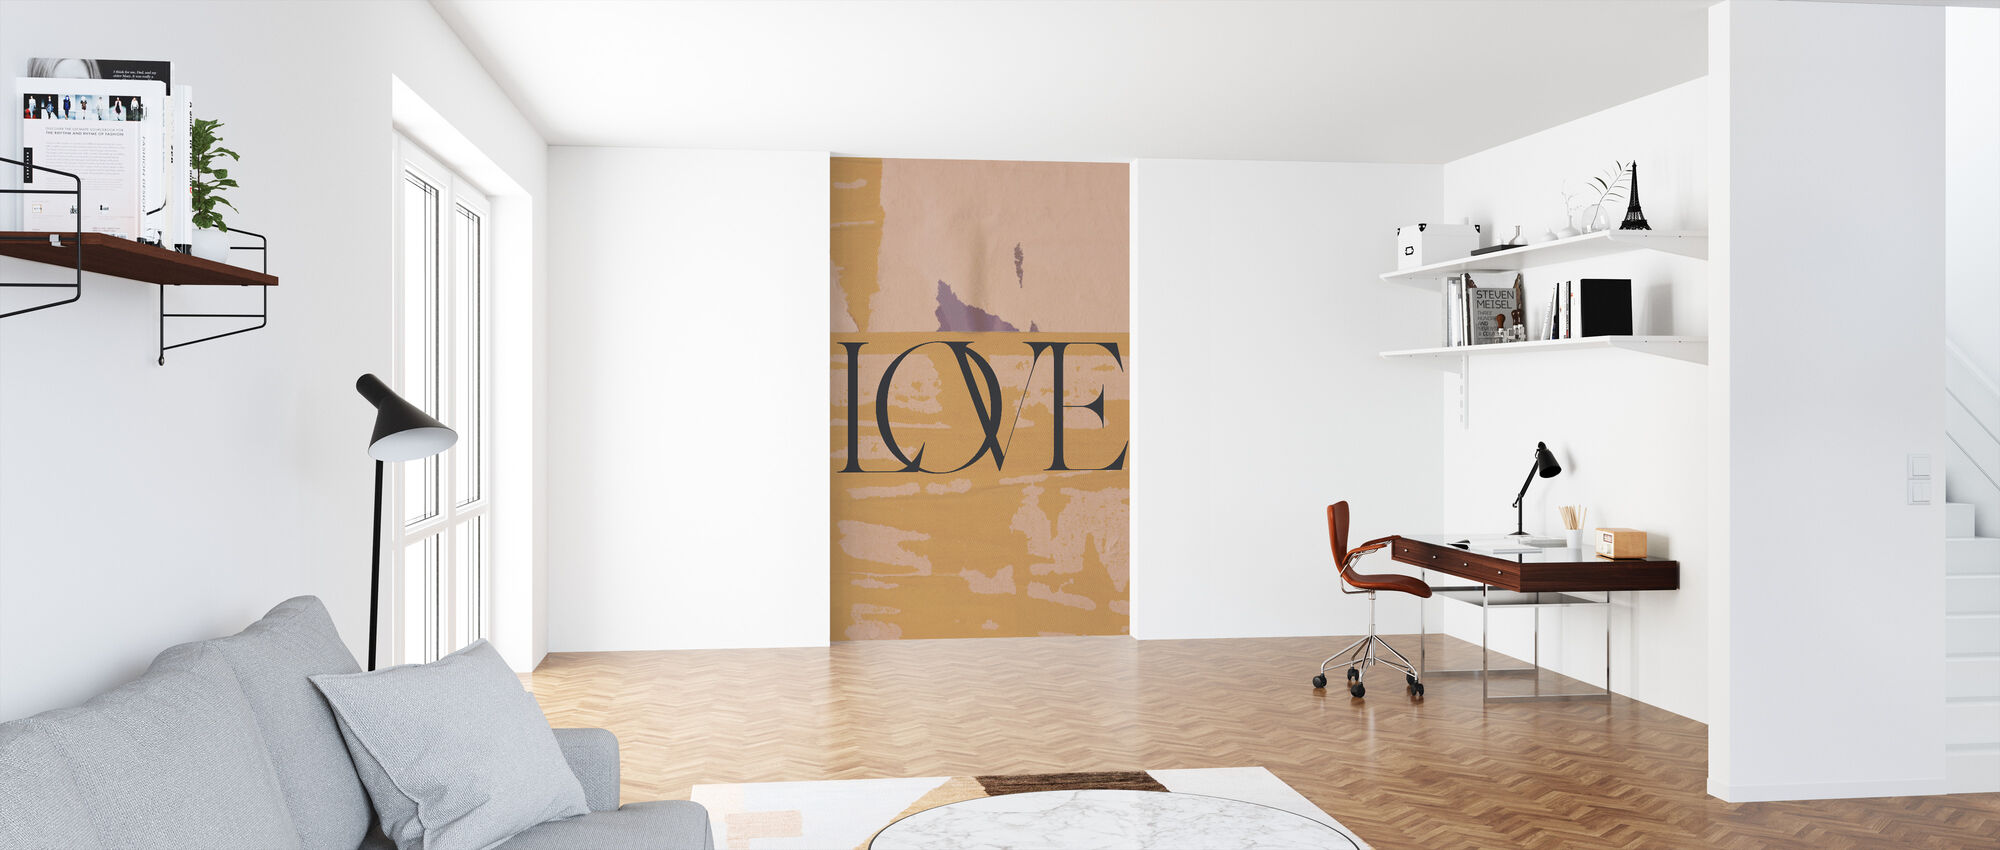 Old Love - Wallpaper - Office